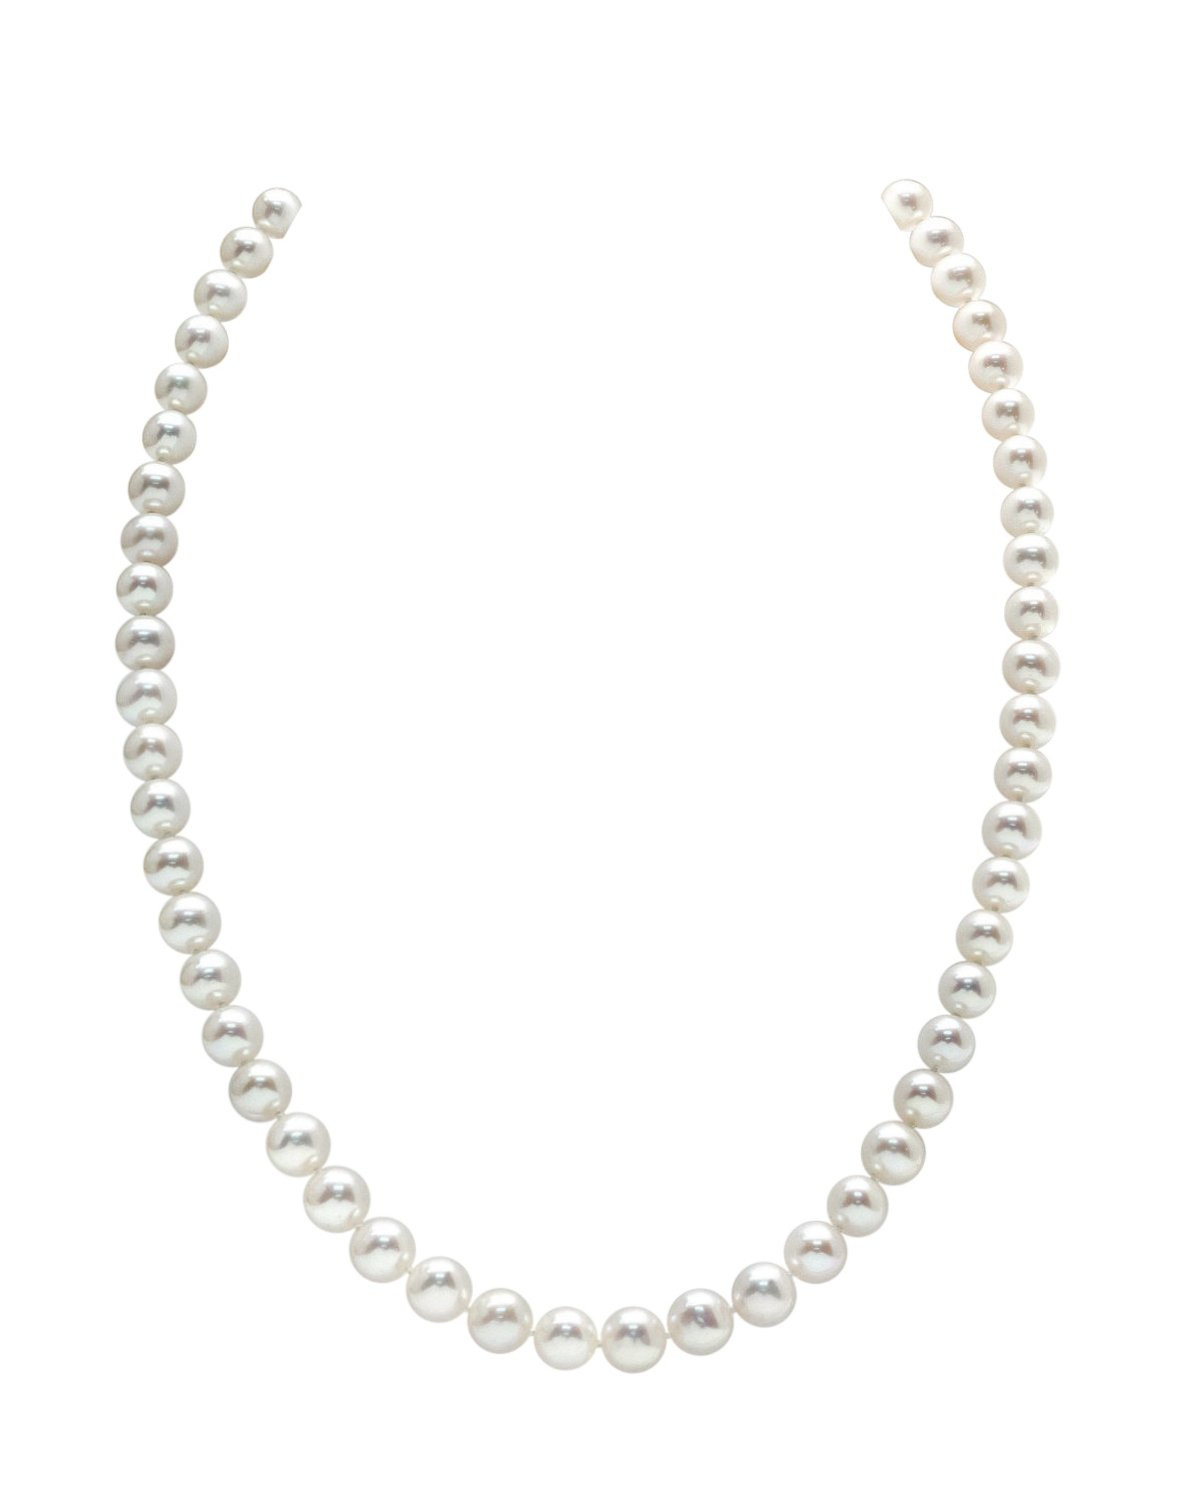 7-8mm Round White Freshwater Cultured Pearl Necklace, 24'' Matinee Length - AAA Quality